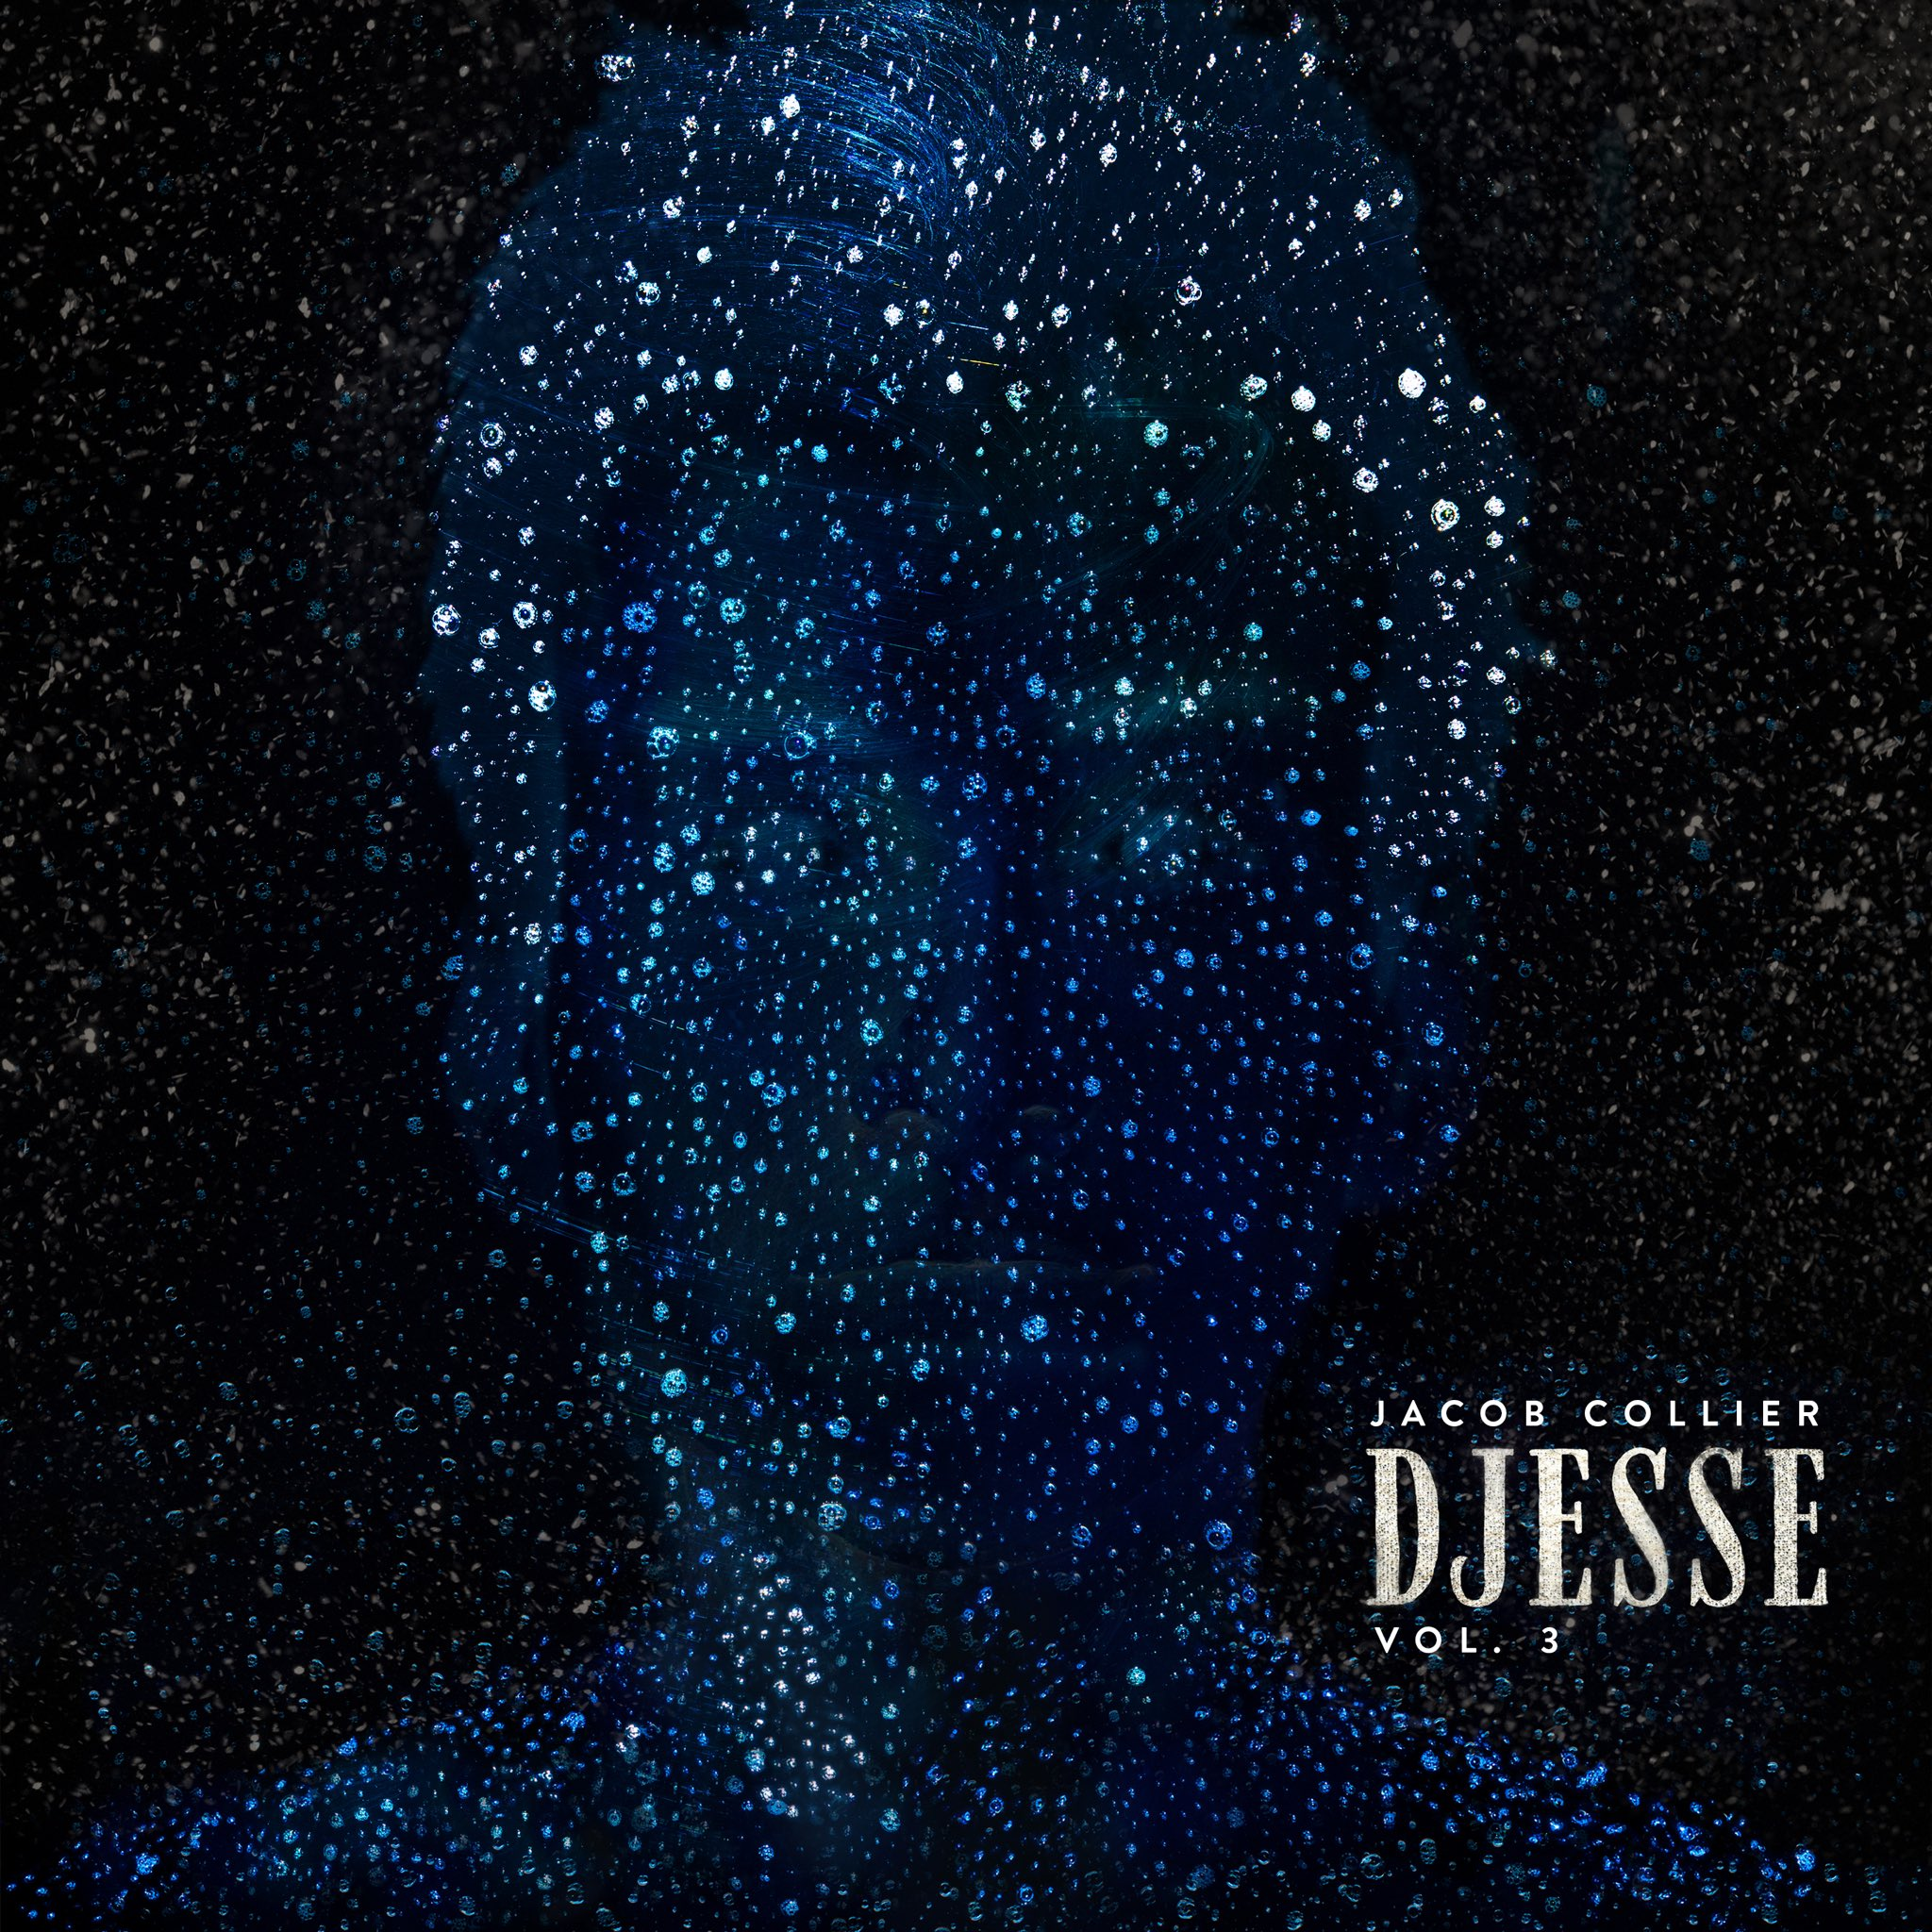 Jacob Collier: Djesse, Vol. 3